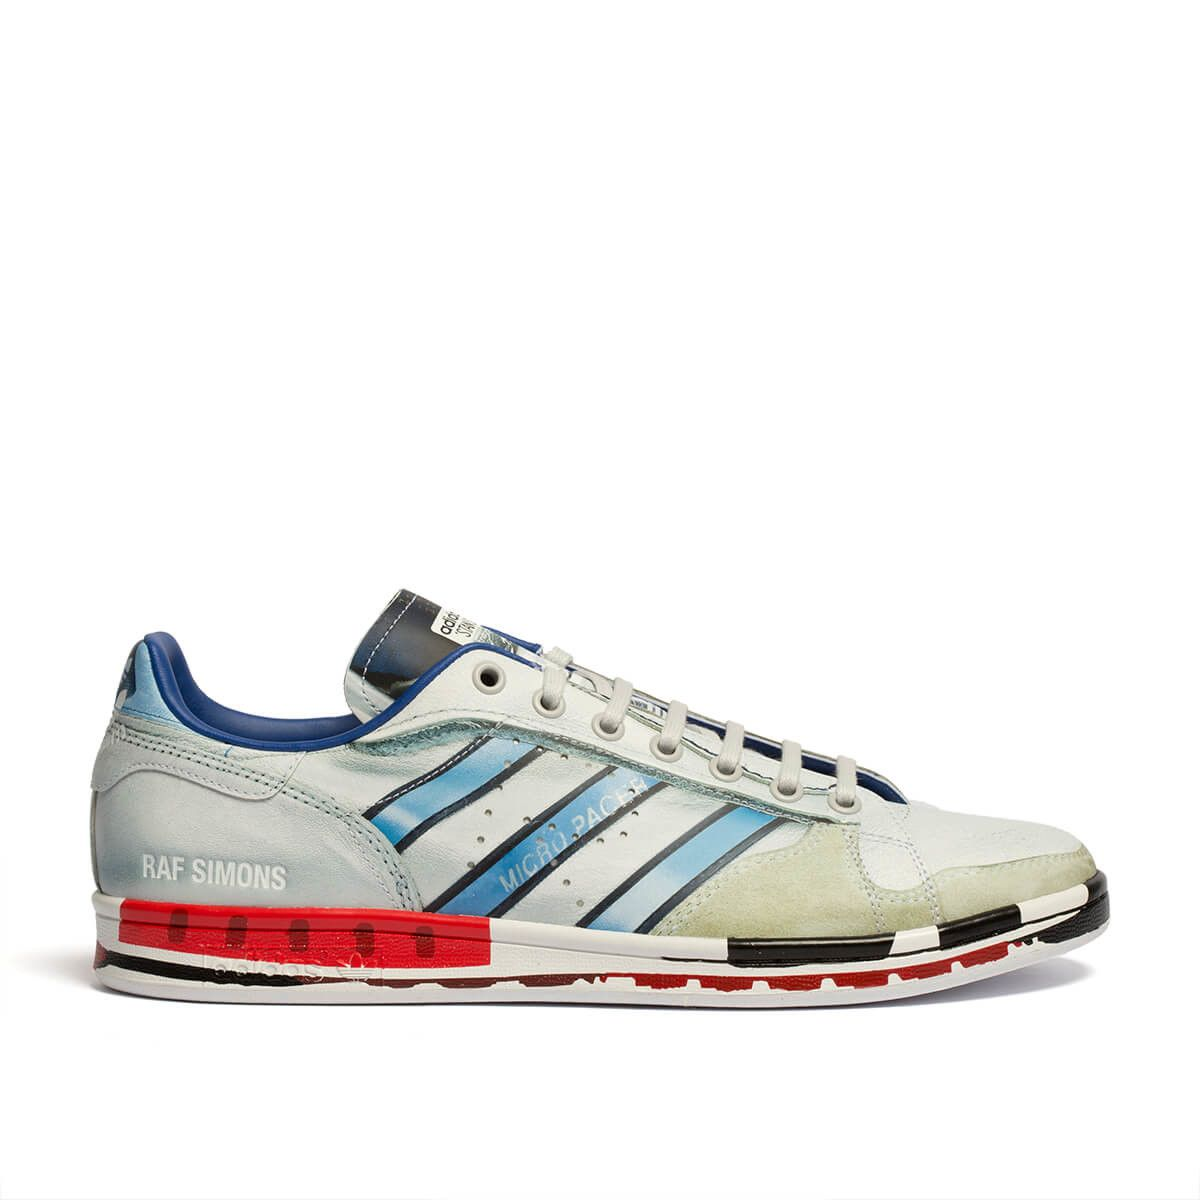 size 40 2b548 aa1fc Micro Stan sneakers from the S S2019 Raf Simons x Adidas collection in  multicolor